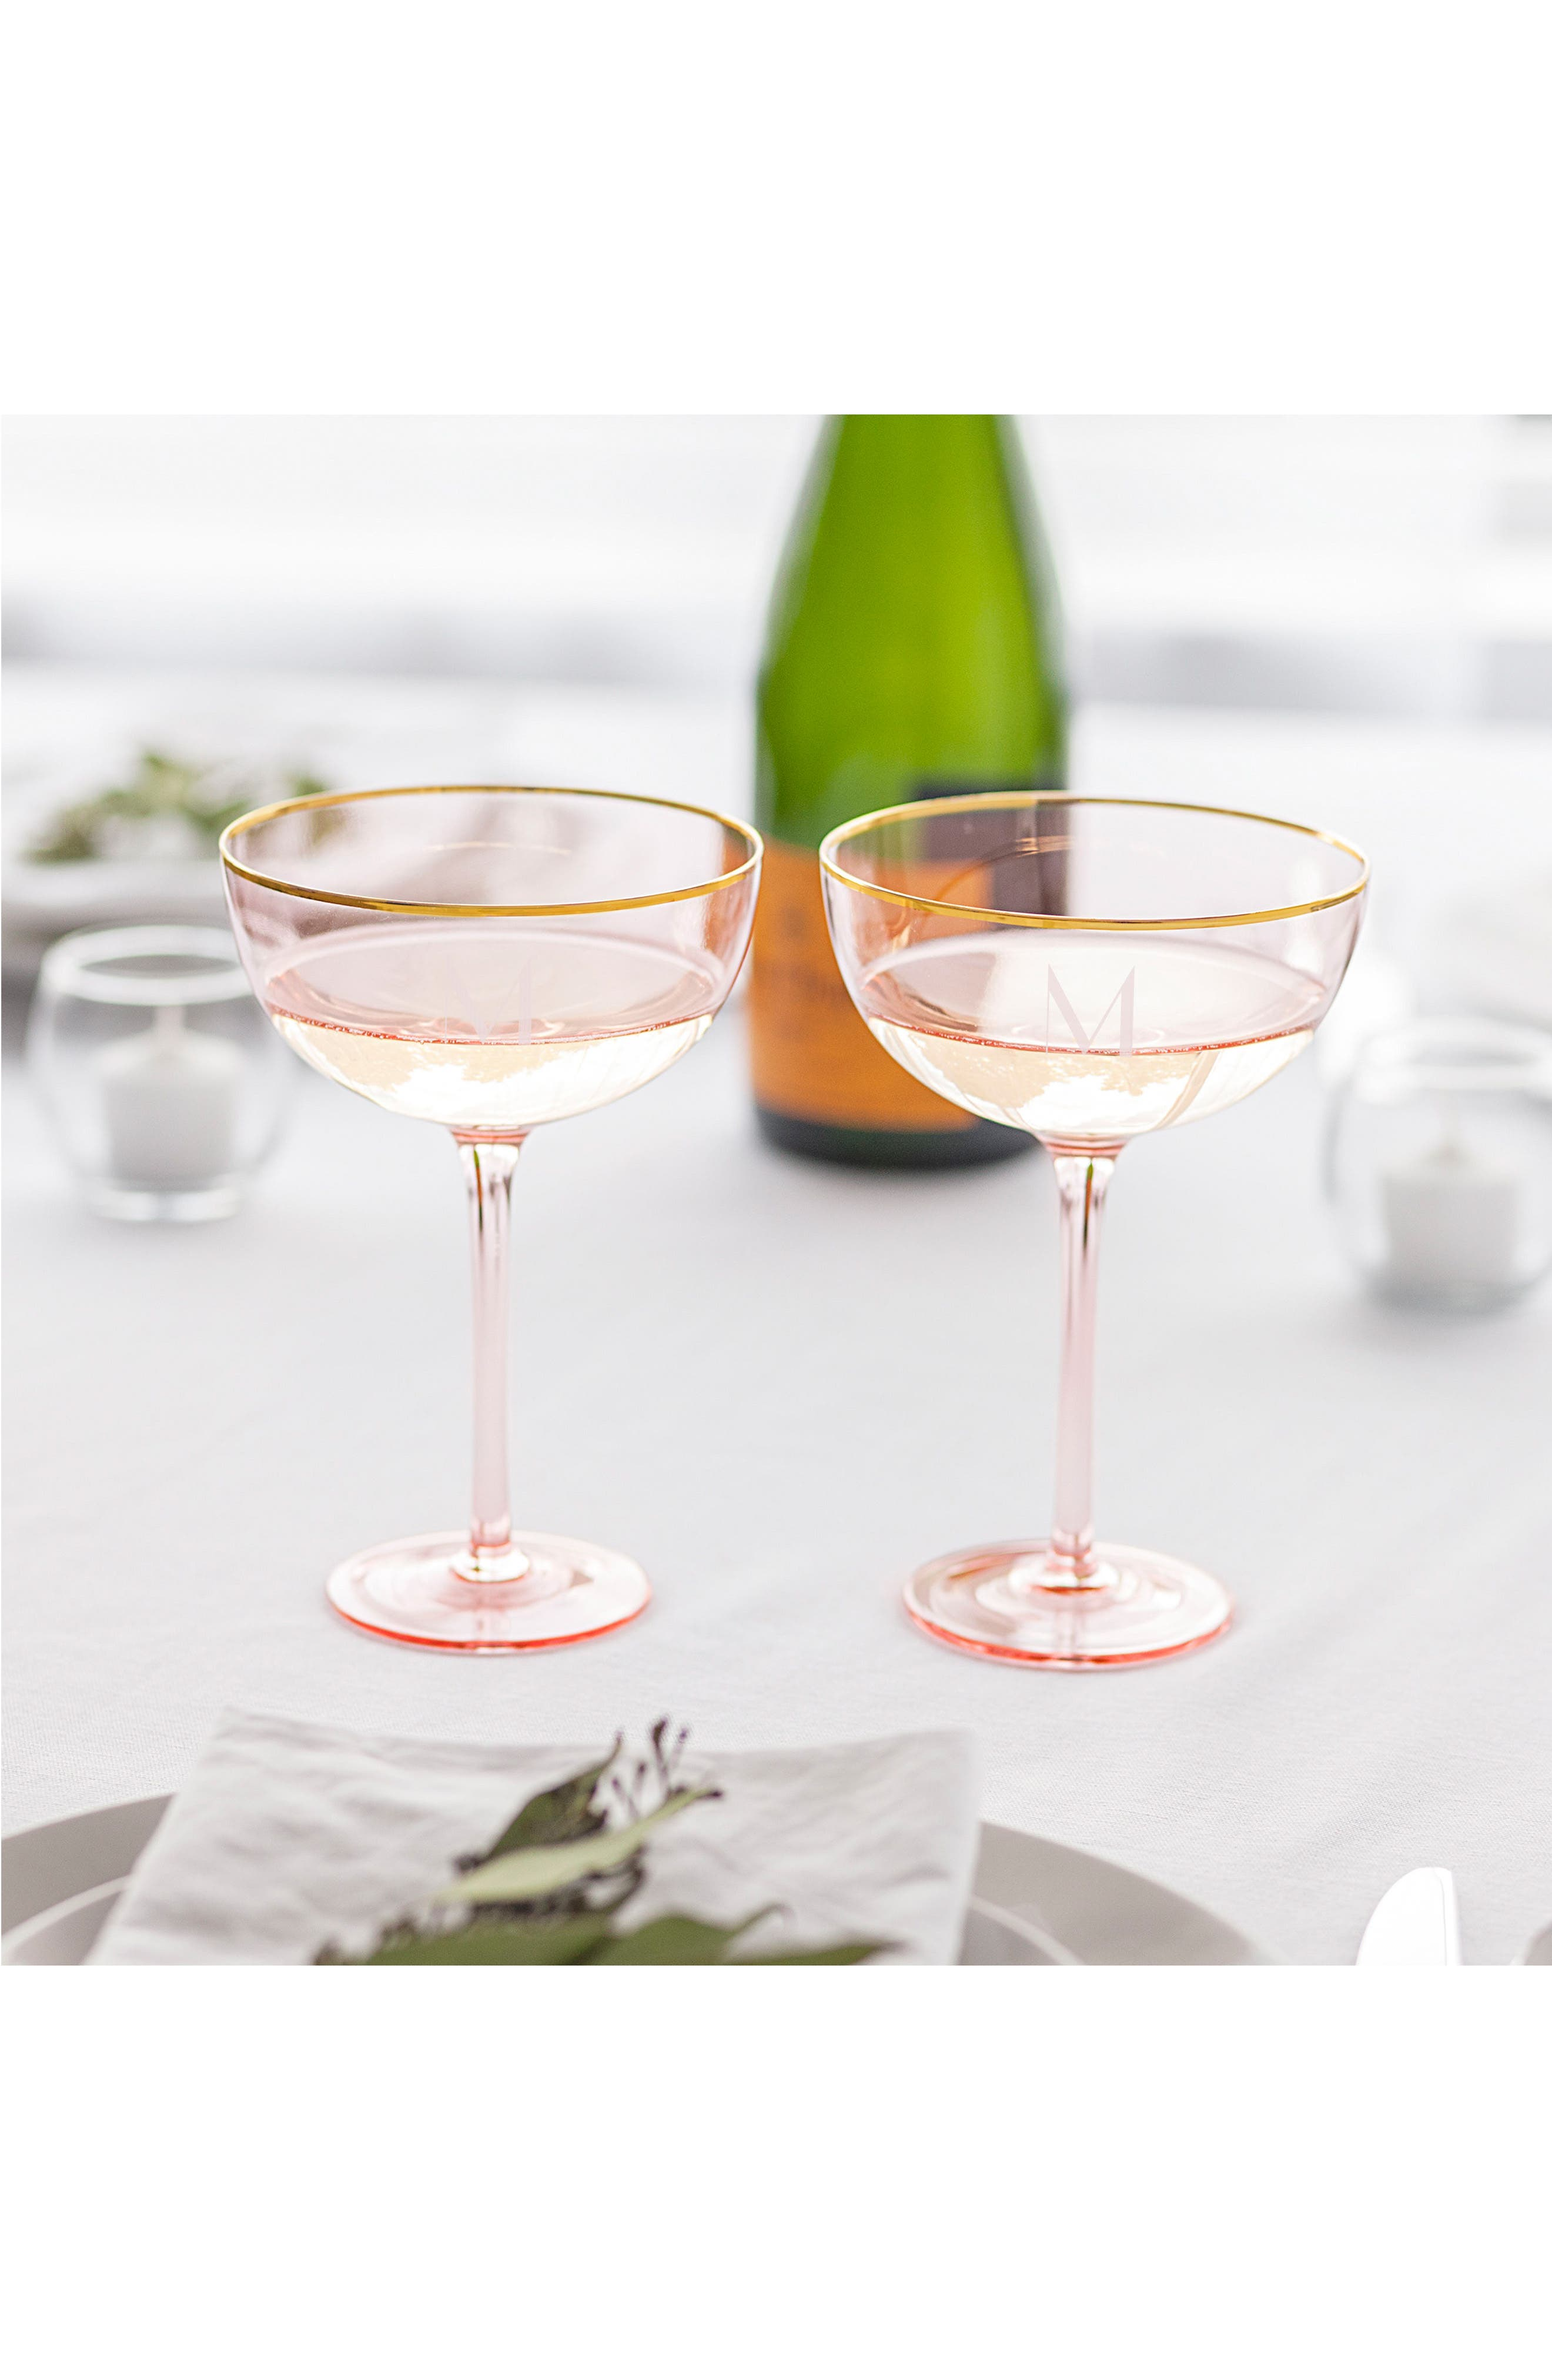 Monogram Set of 2 Champagne Coupes,                             Alternate thumbnail 5, color,